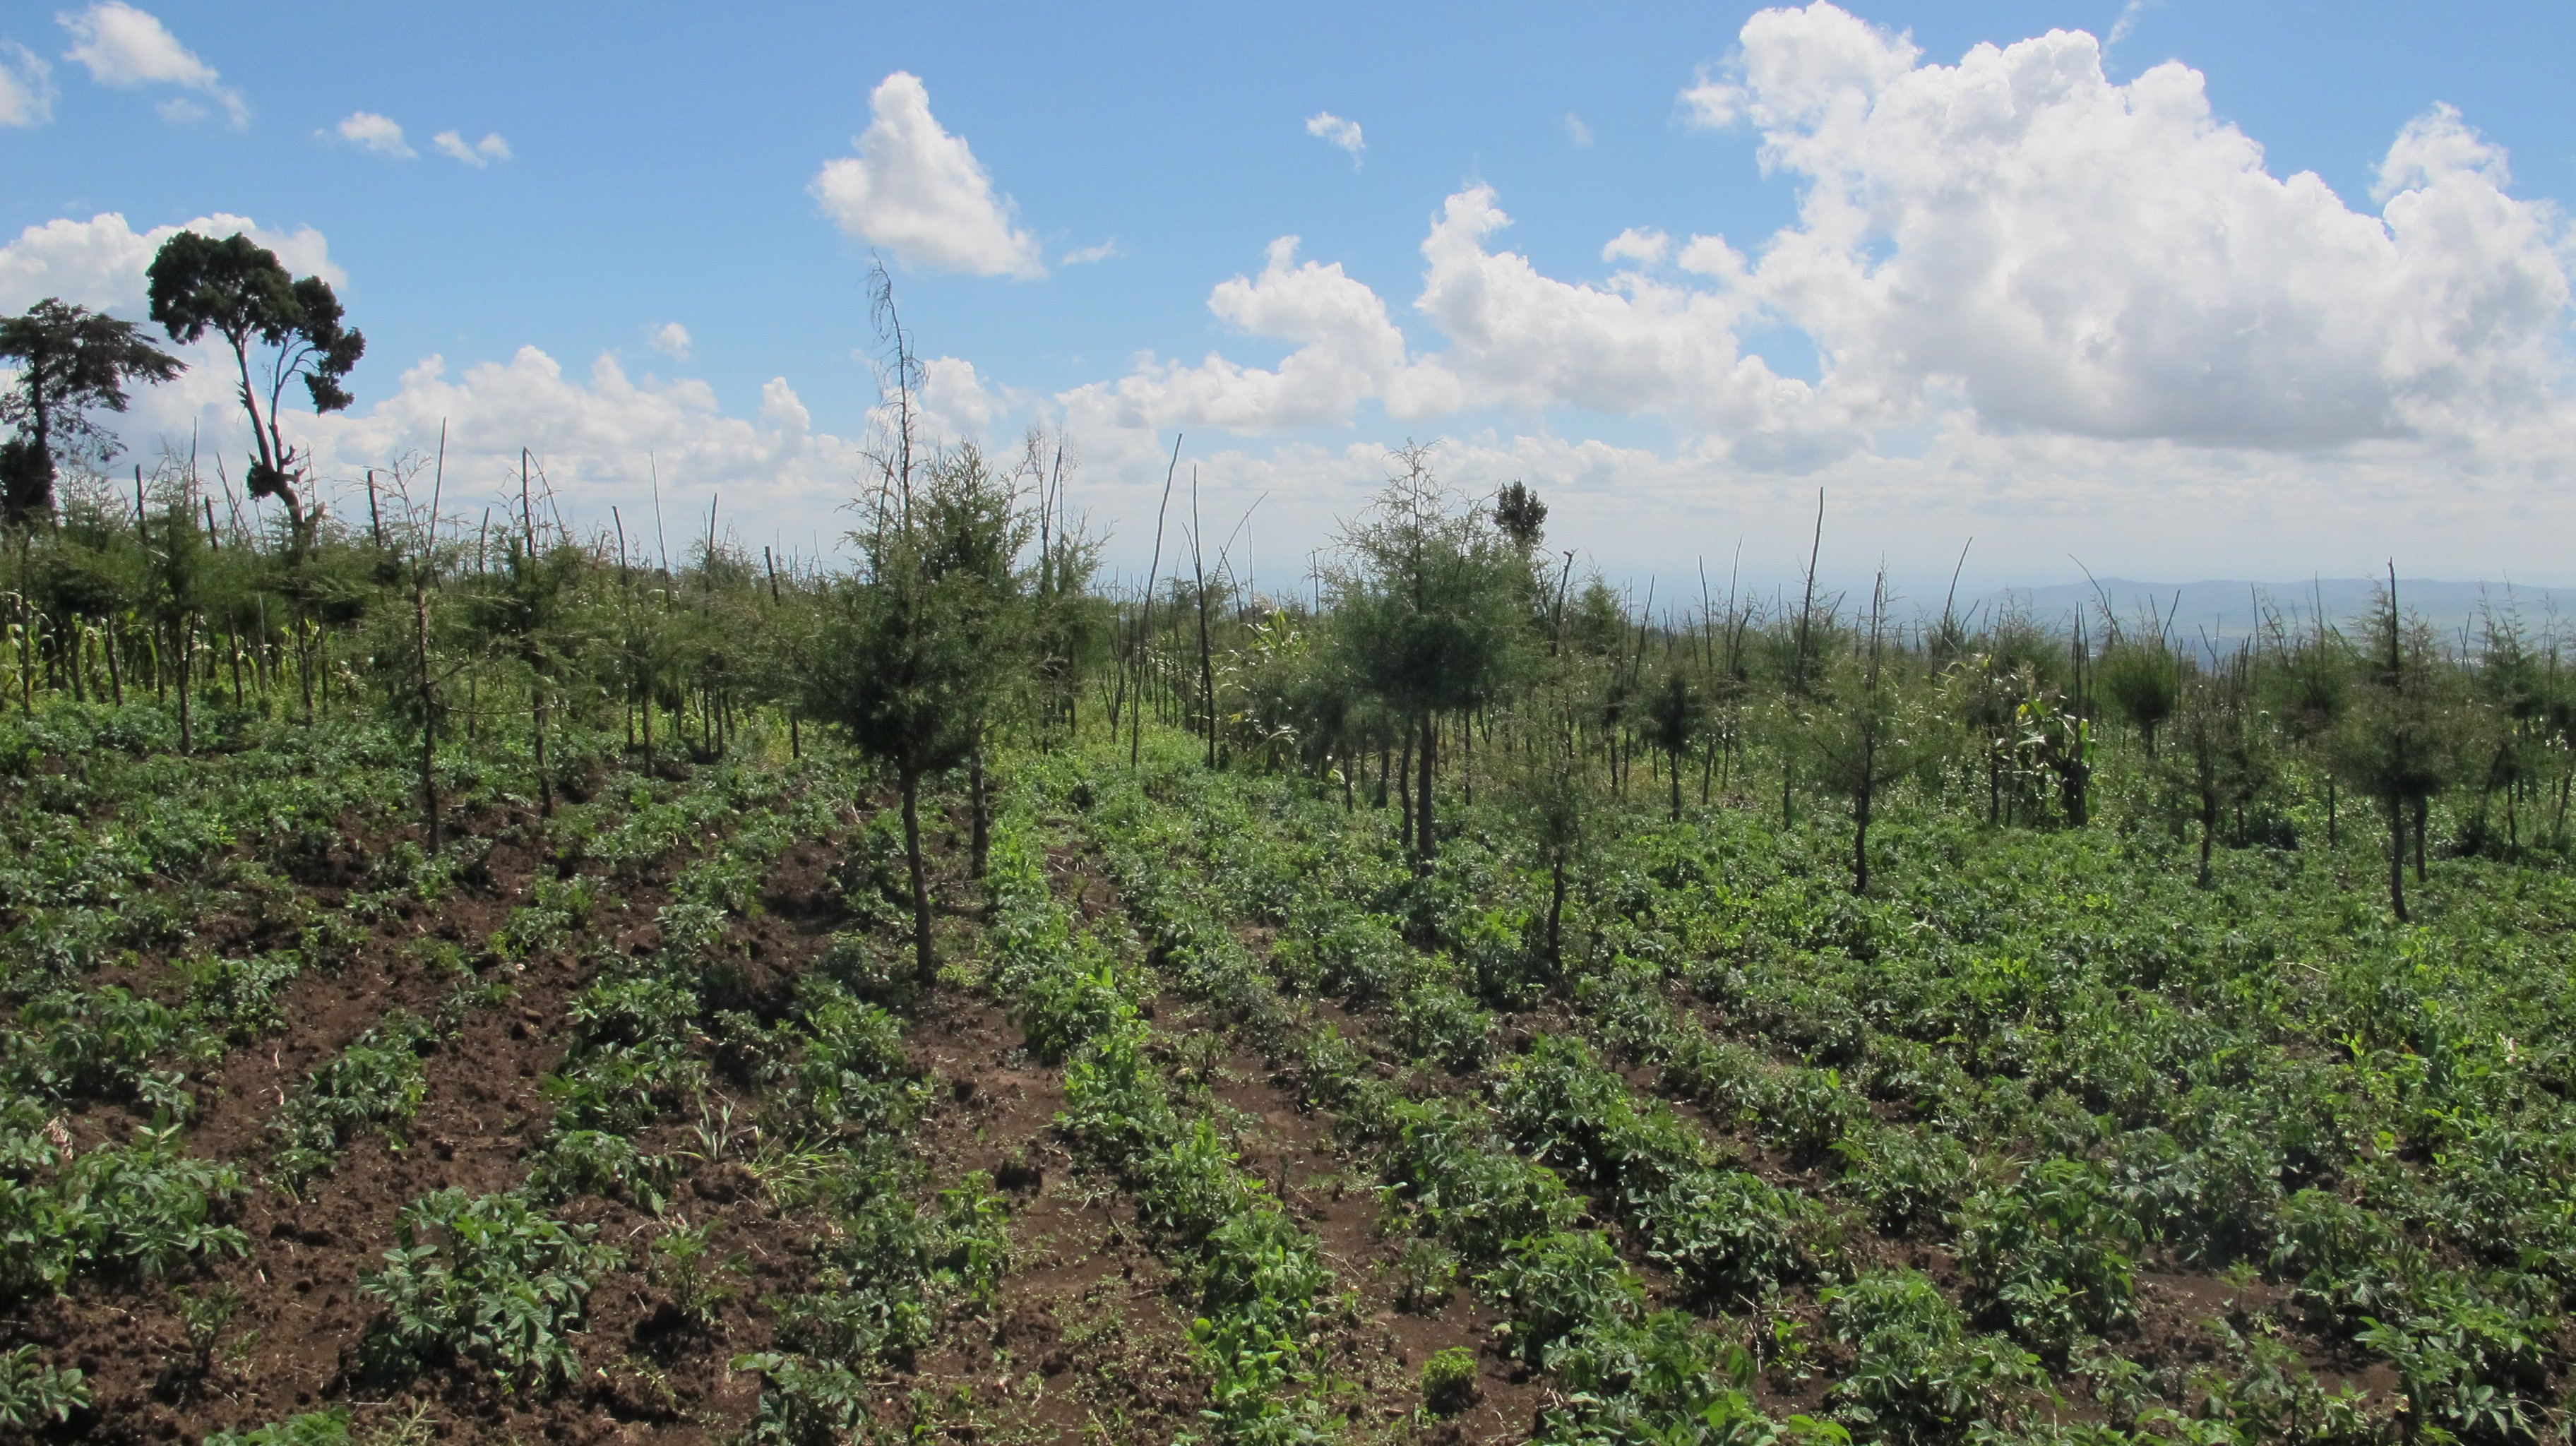 agroforestry example by Lauriane Cayet